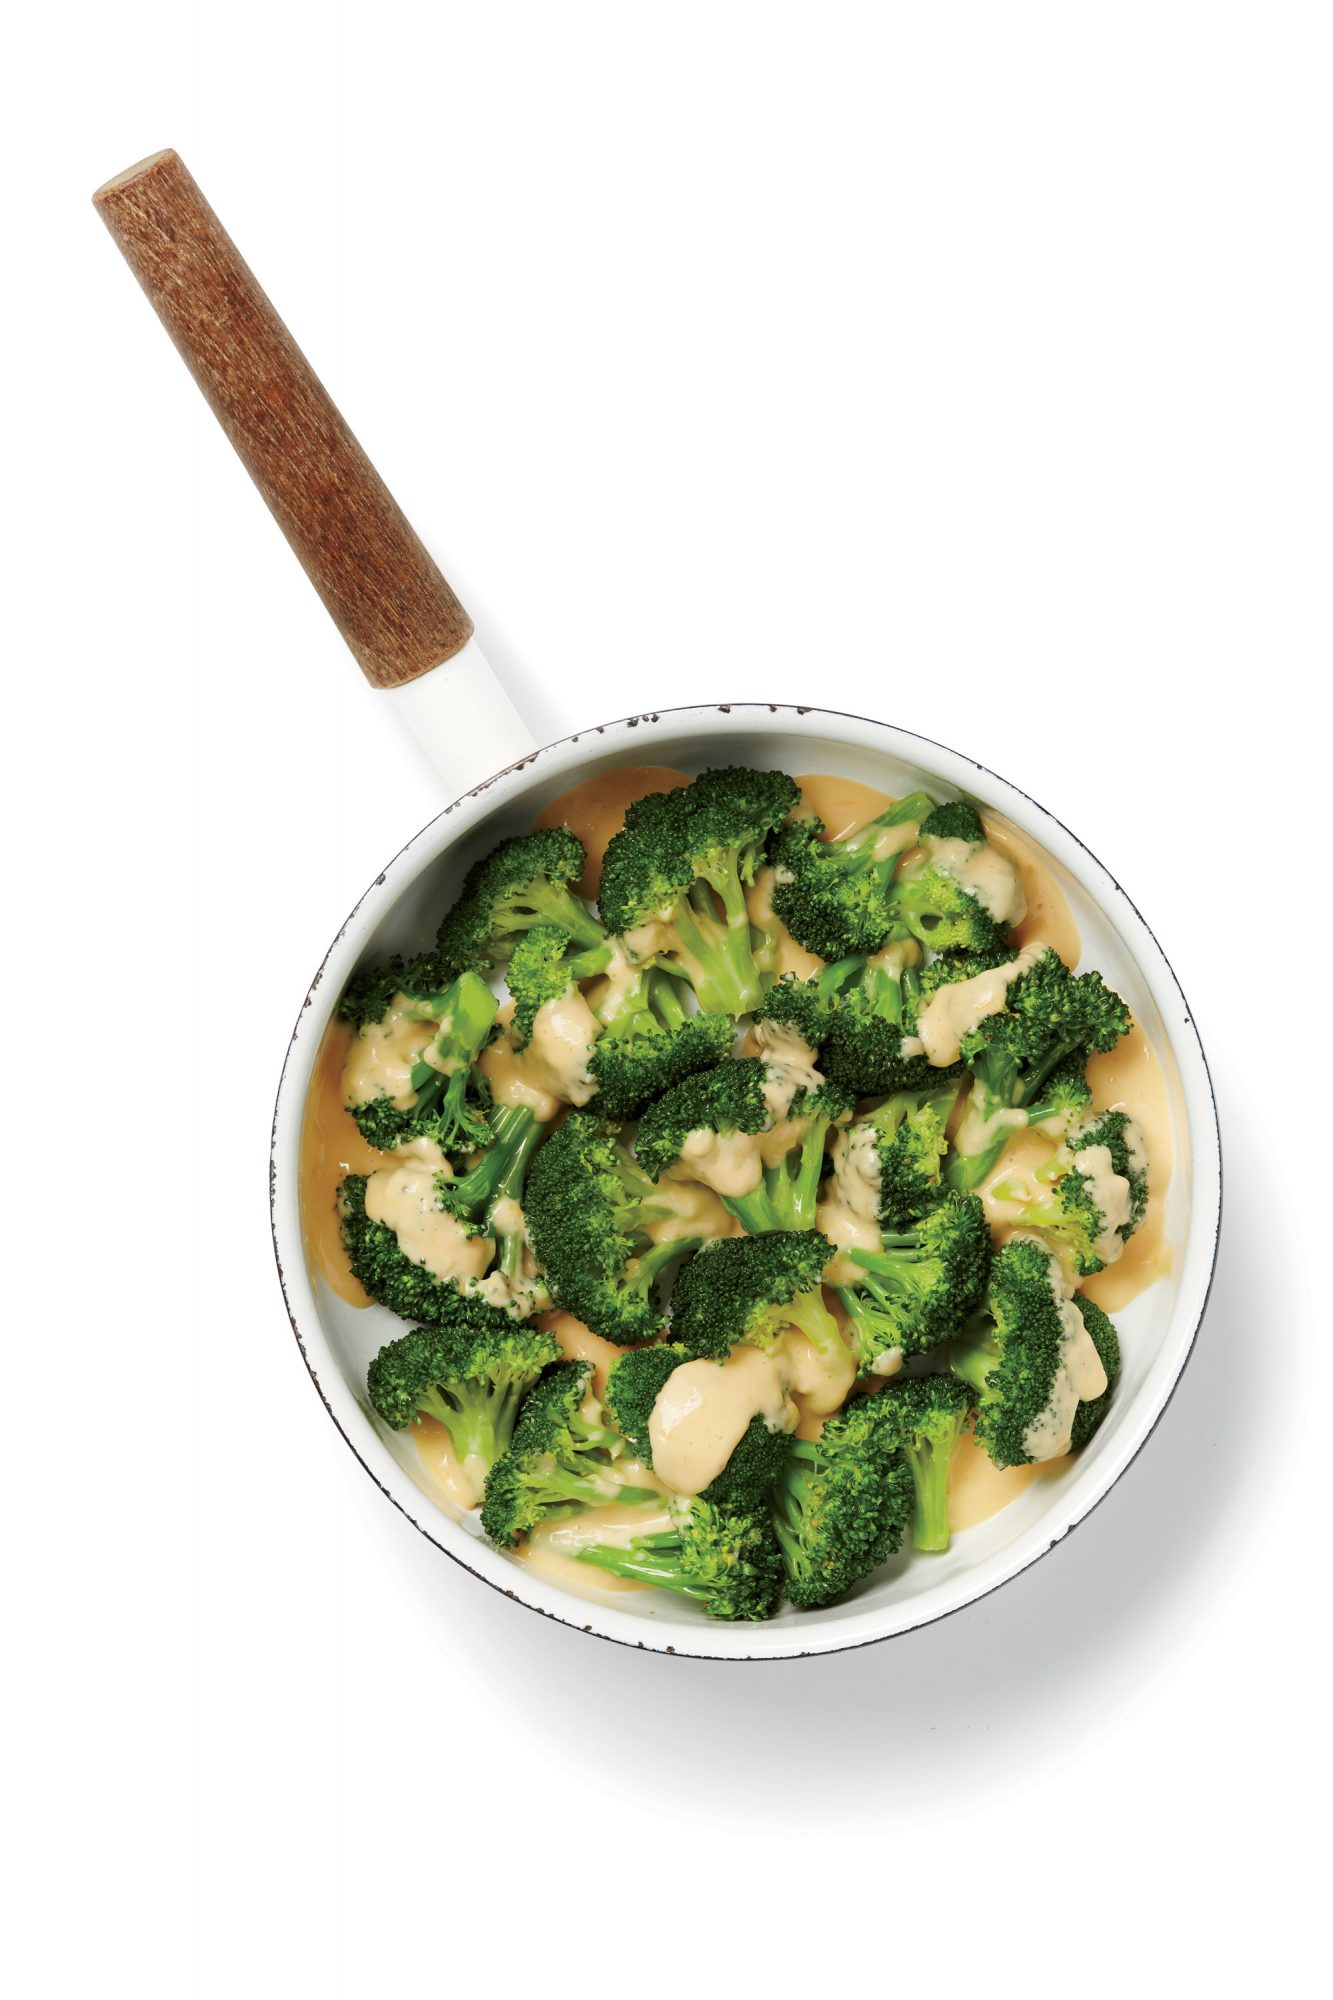 Broccoli with Cheese Sauce image